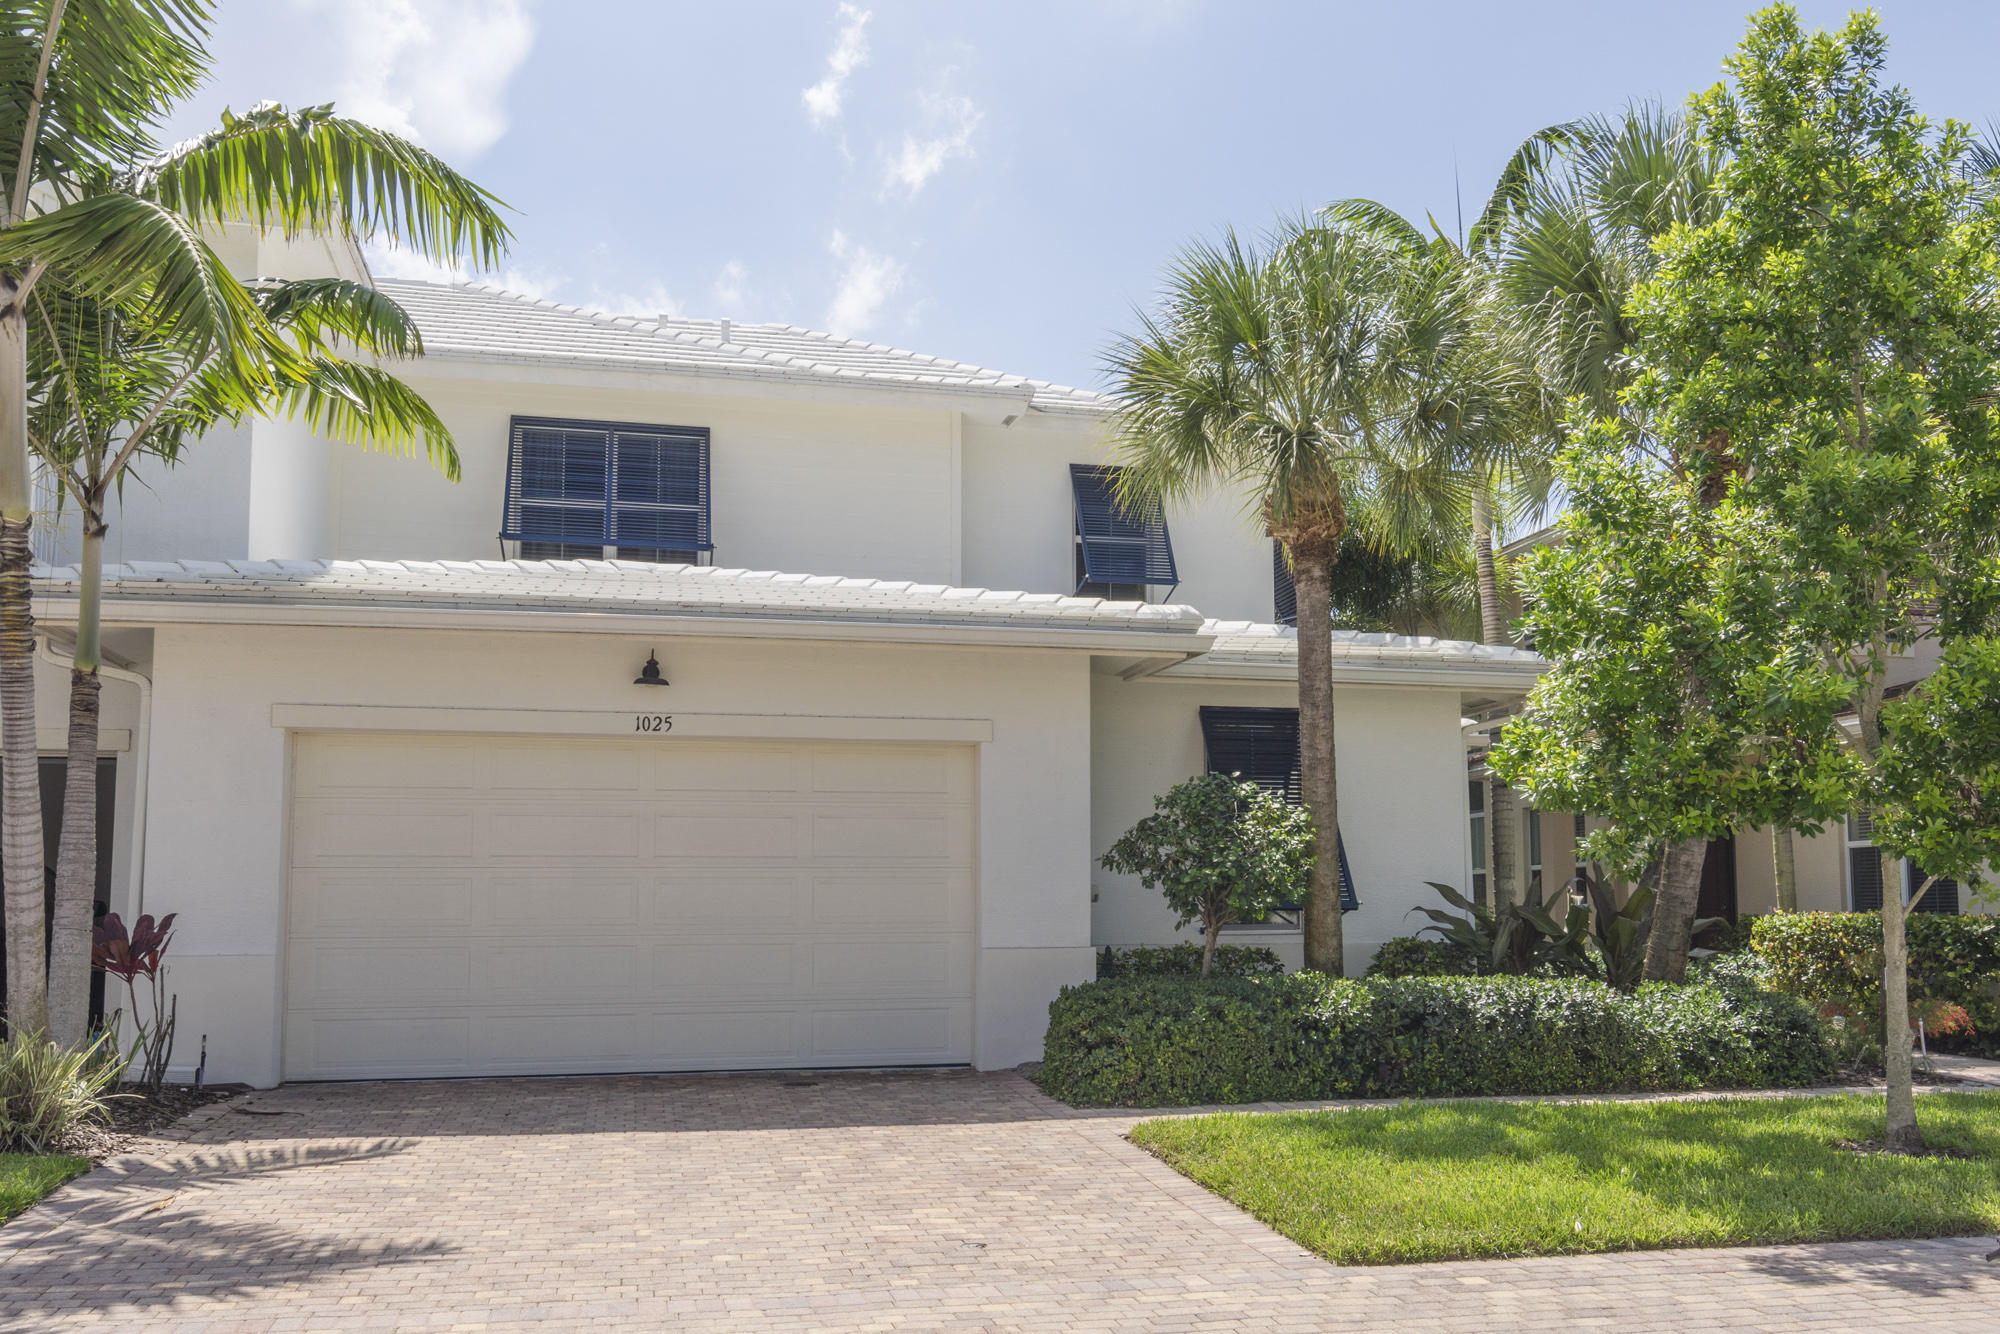 1025 Piccadilly Street, Palm Beach Gardens, Florida 33418, 3 Bedrooms Bedrooms, ,2.1 BathroomsBathrooms,Townhouse,For Sale,Hampton Cay,Piccadilly,RX-10621116